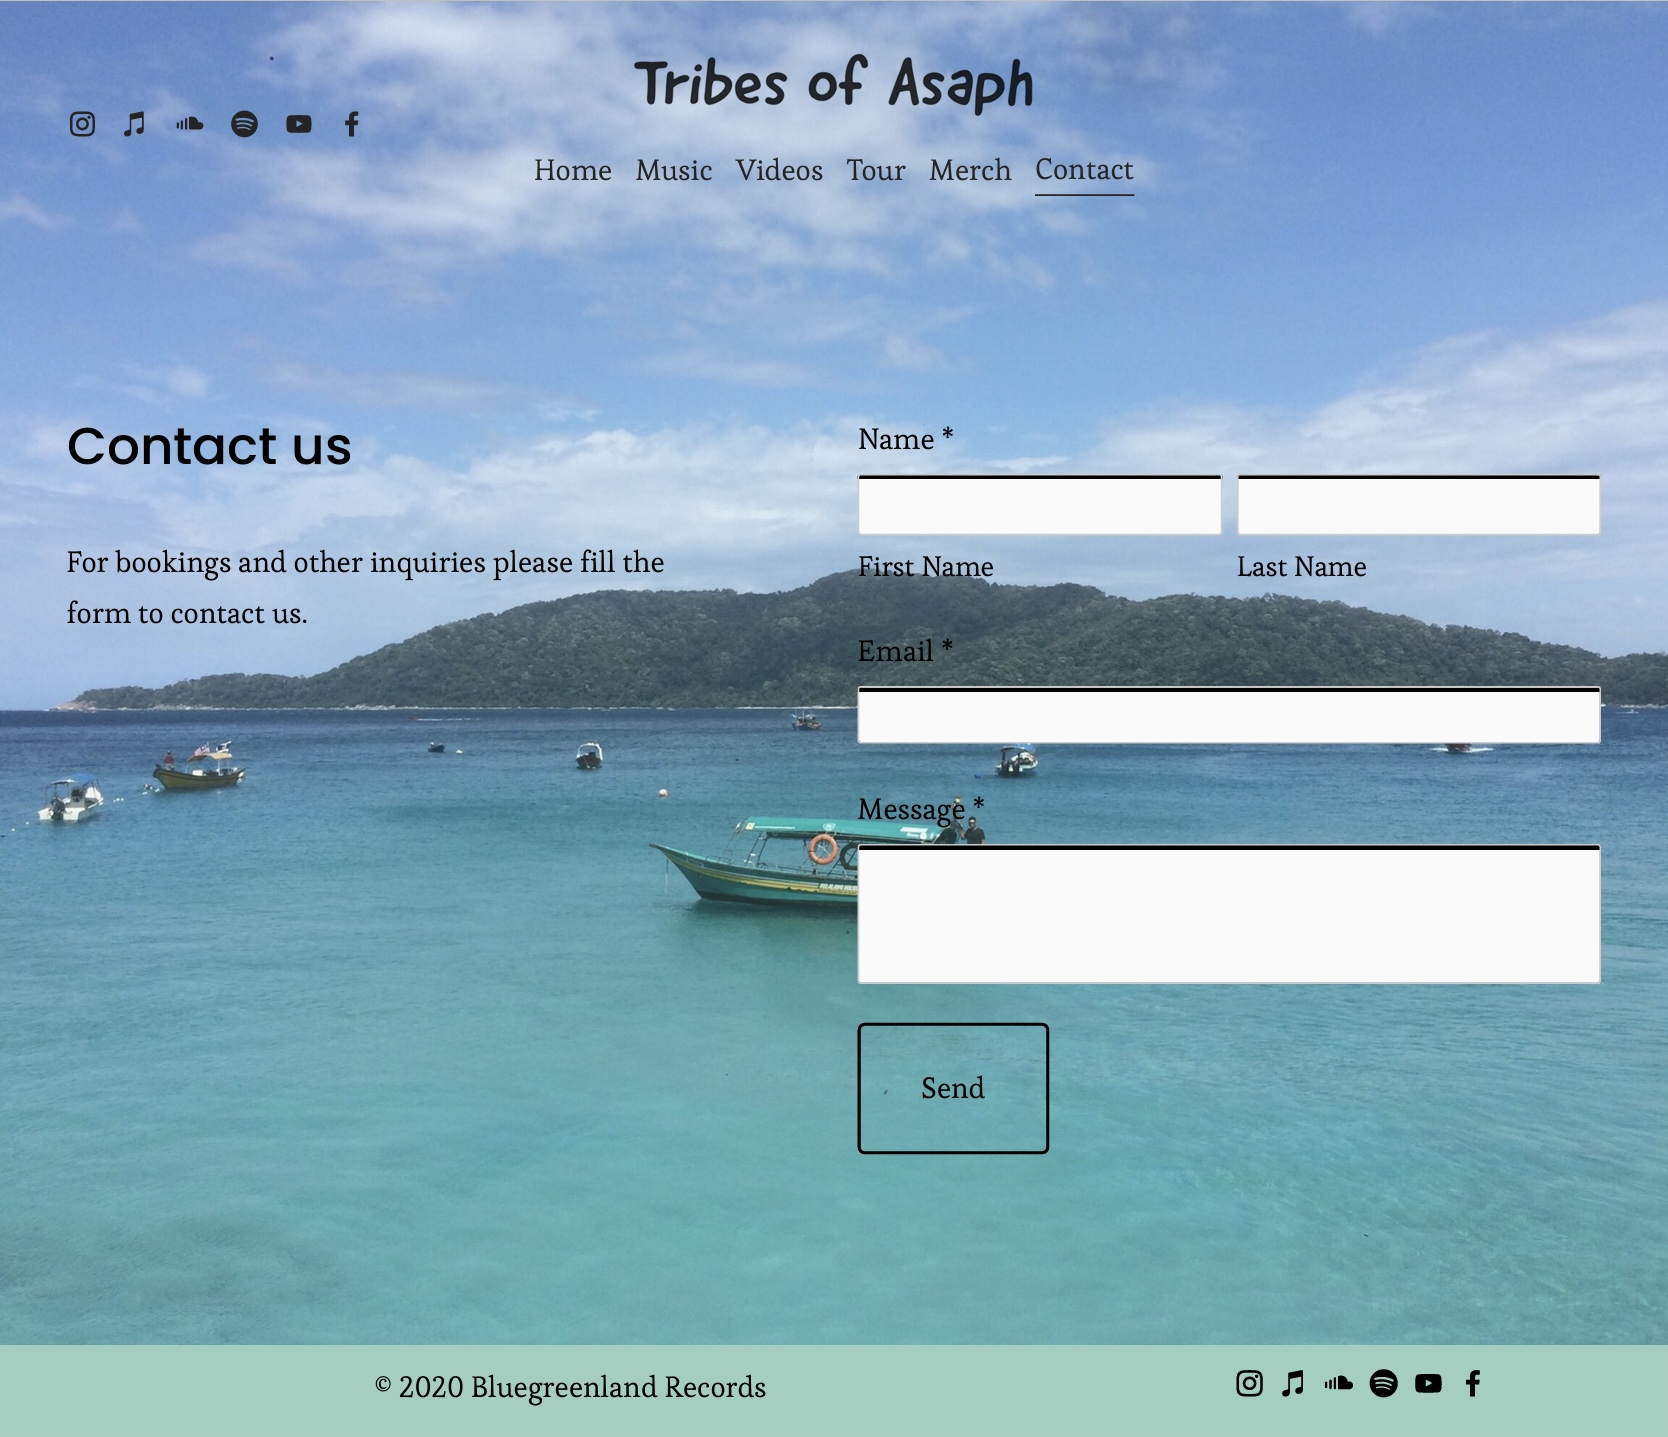 Tribes of Asaph - Contact